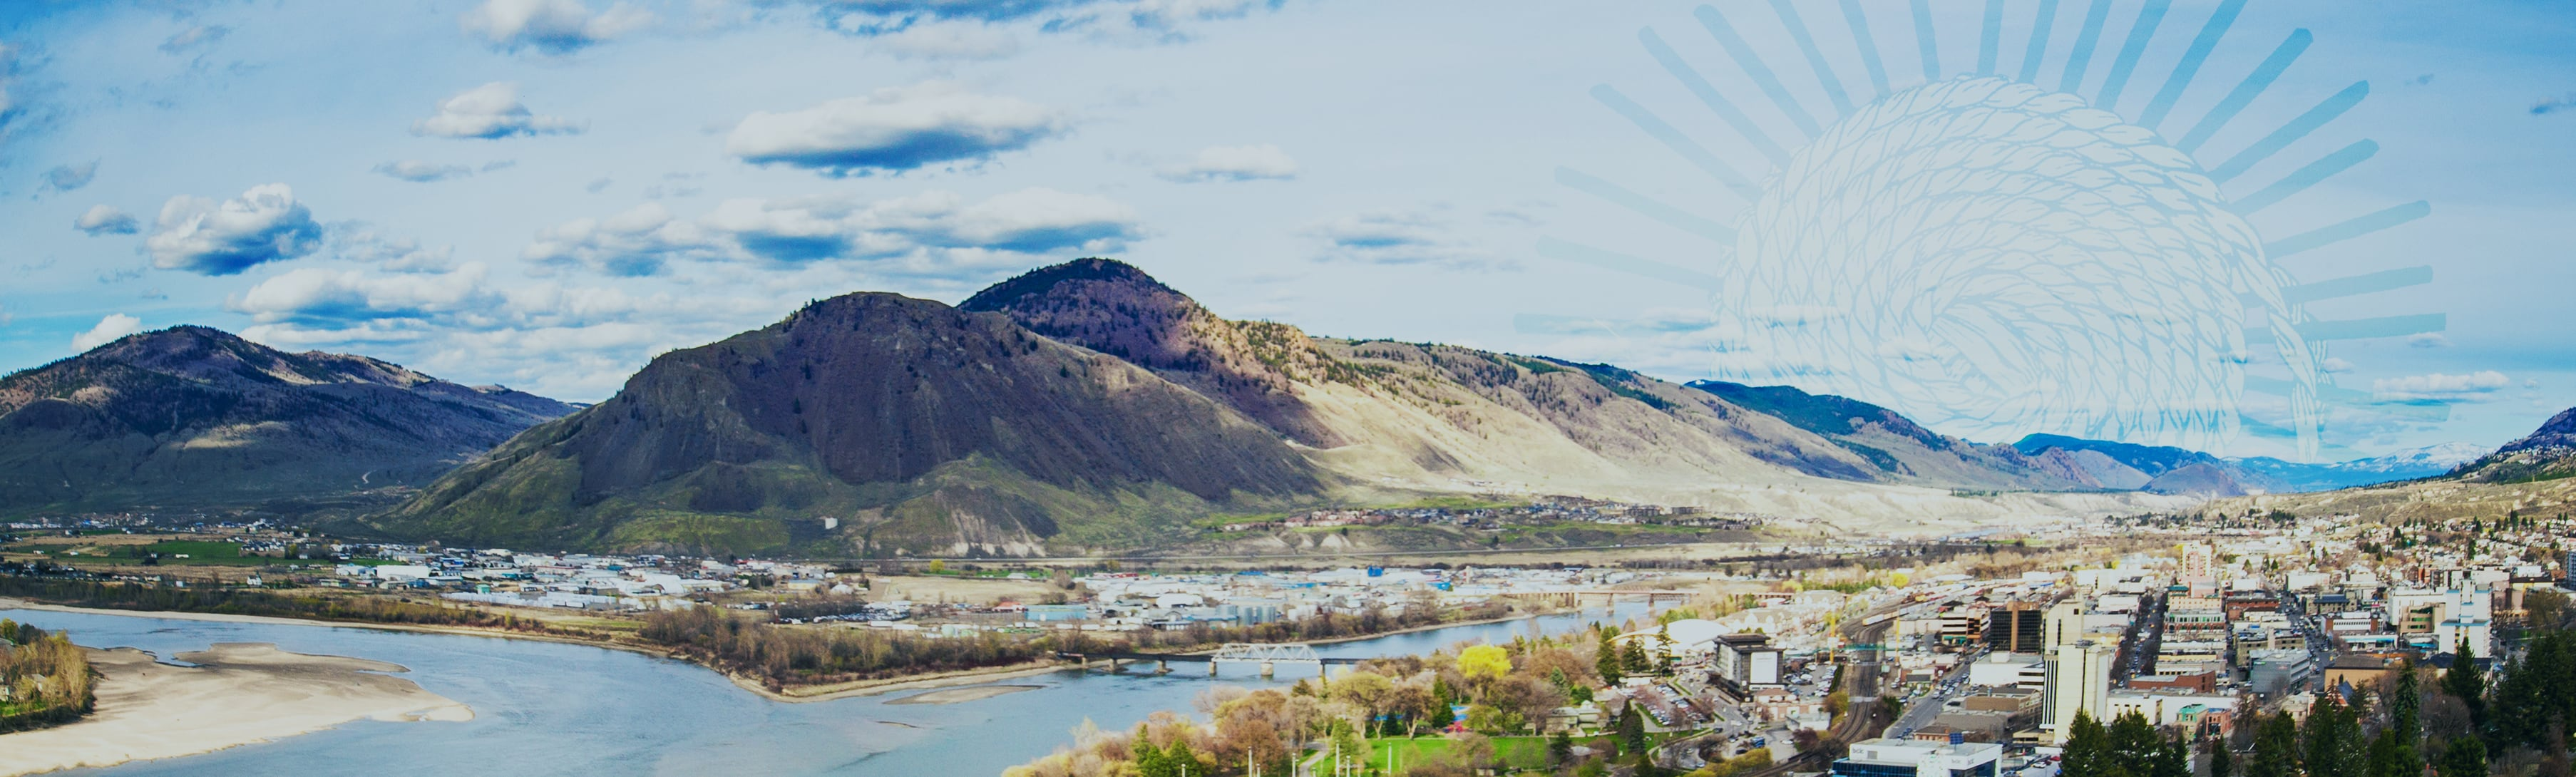 Panoramic view of Kamloops North Shore